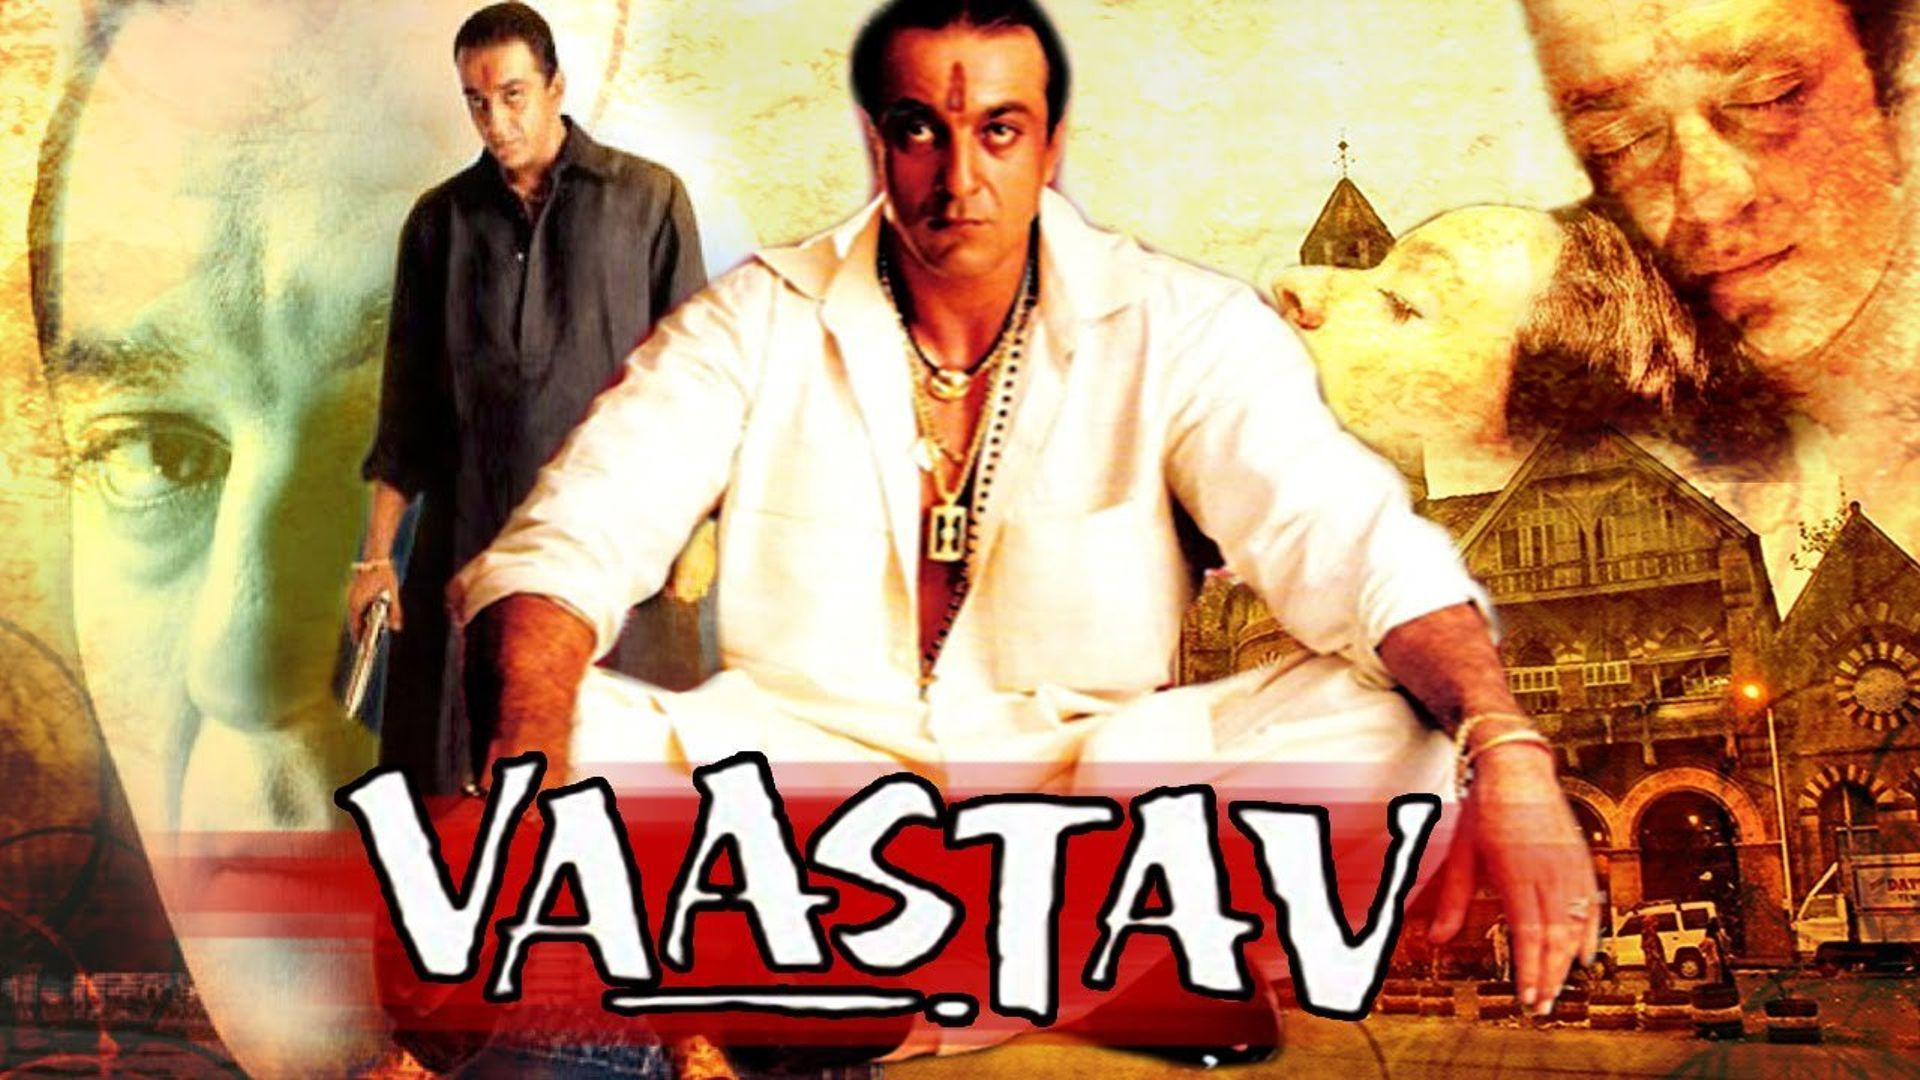 vaastav movie hd